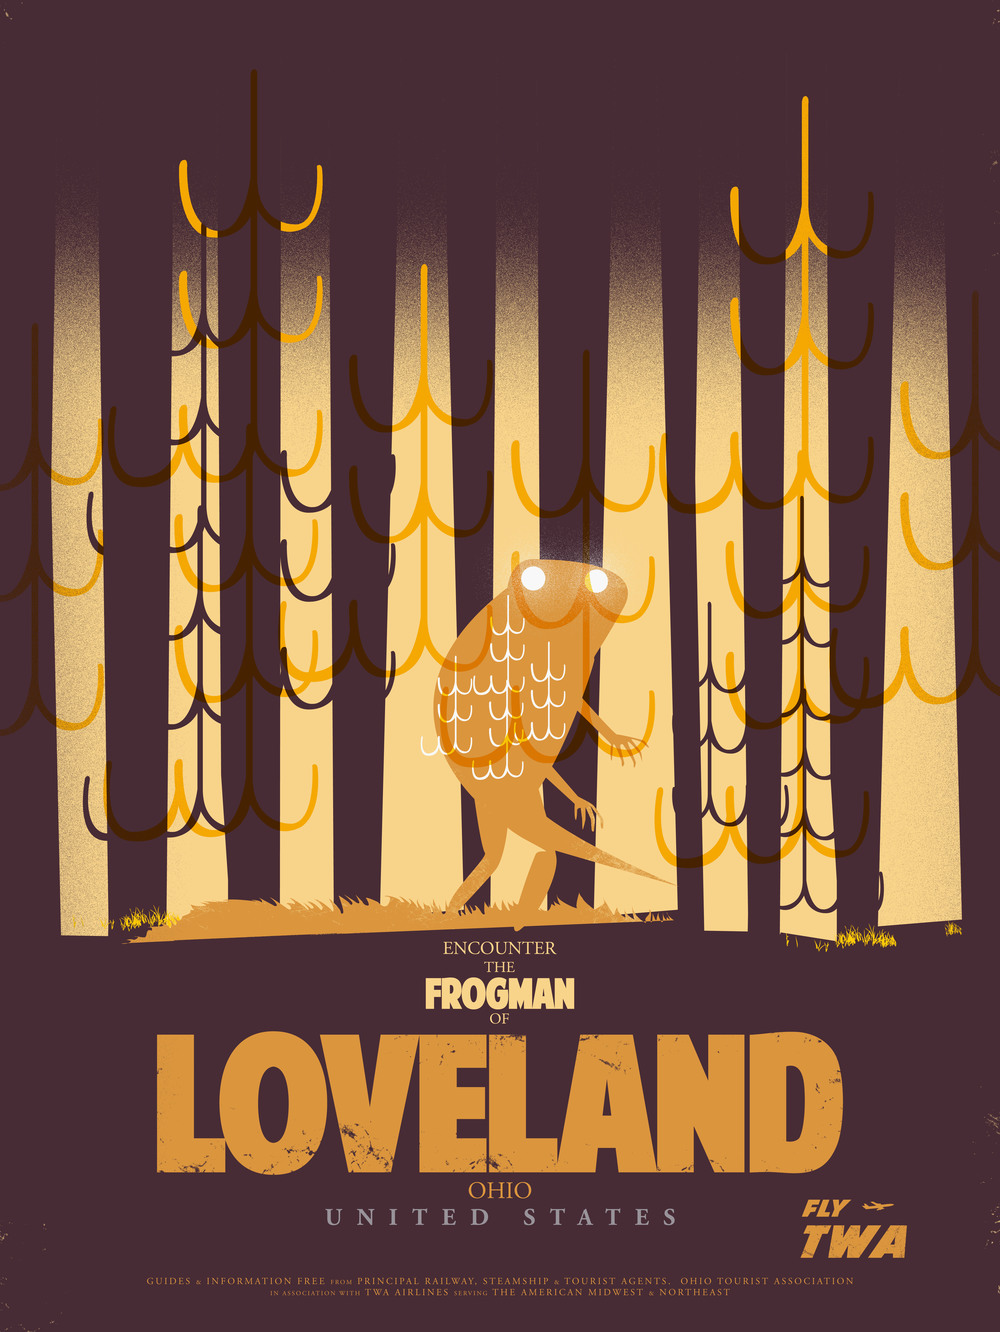 Travel Posters- F rogman of Loveland $35